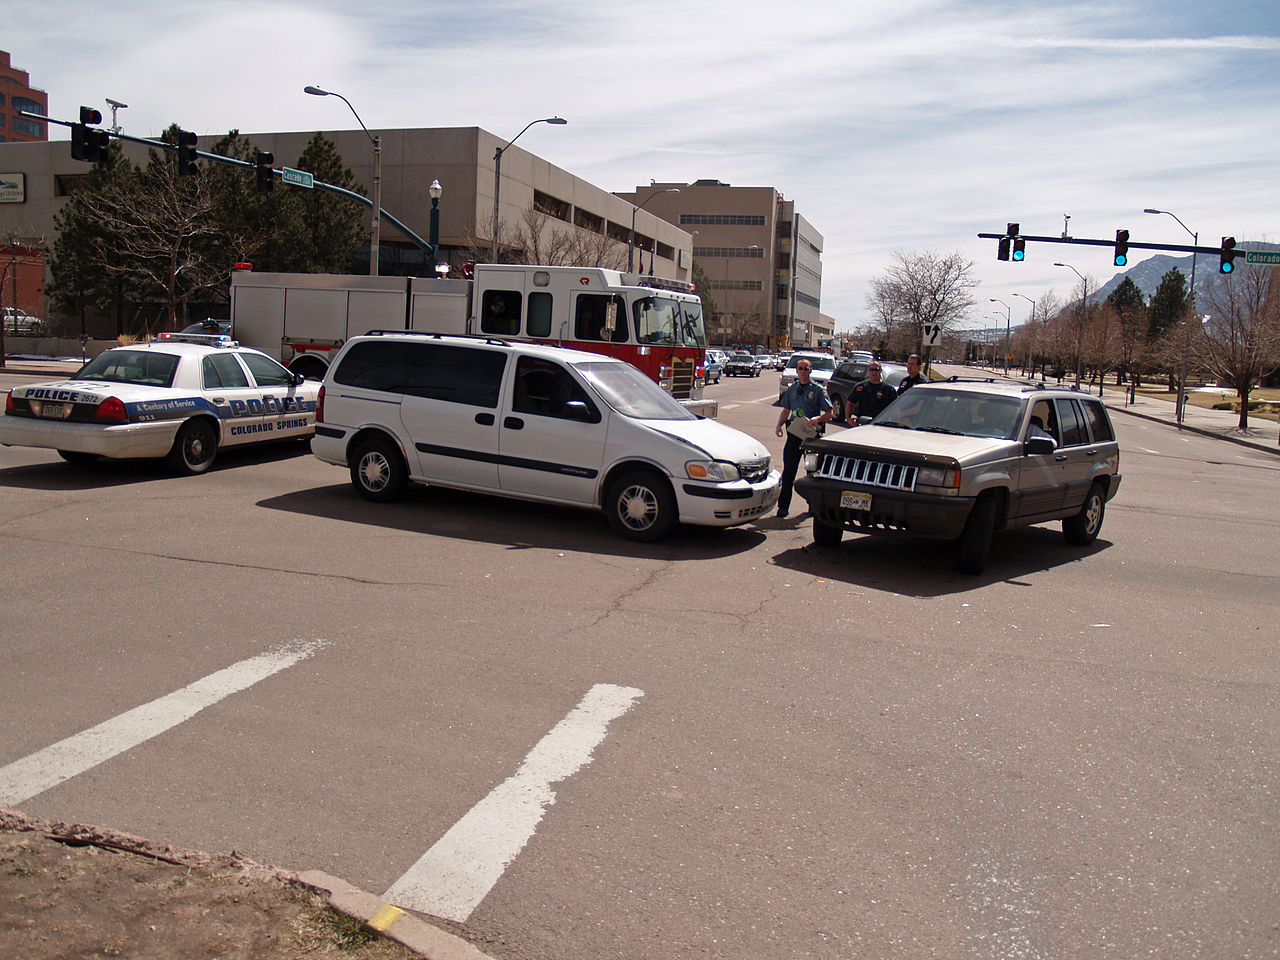 1280px-Car_Accident_in_Colorado_Springs_by_David_Shankbone